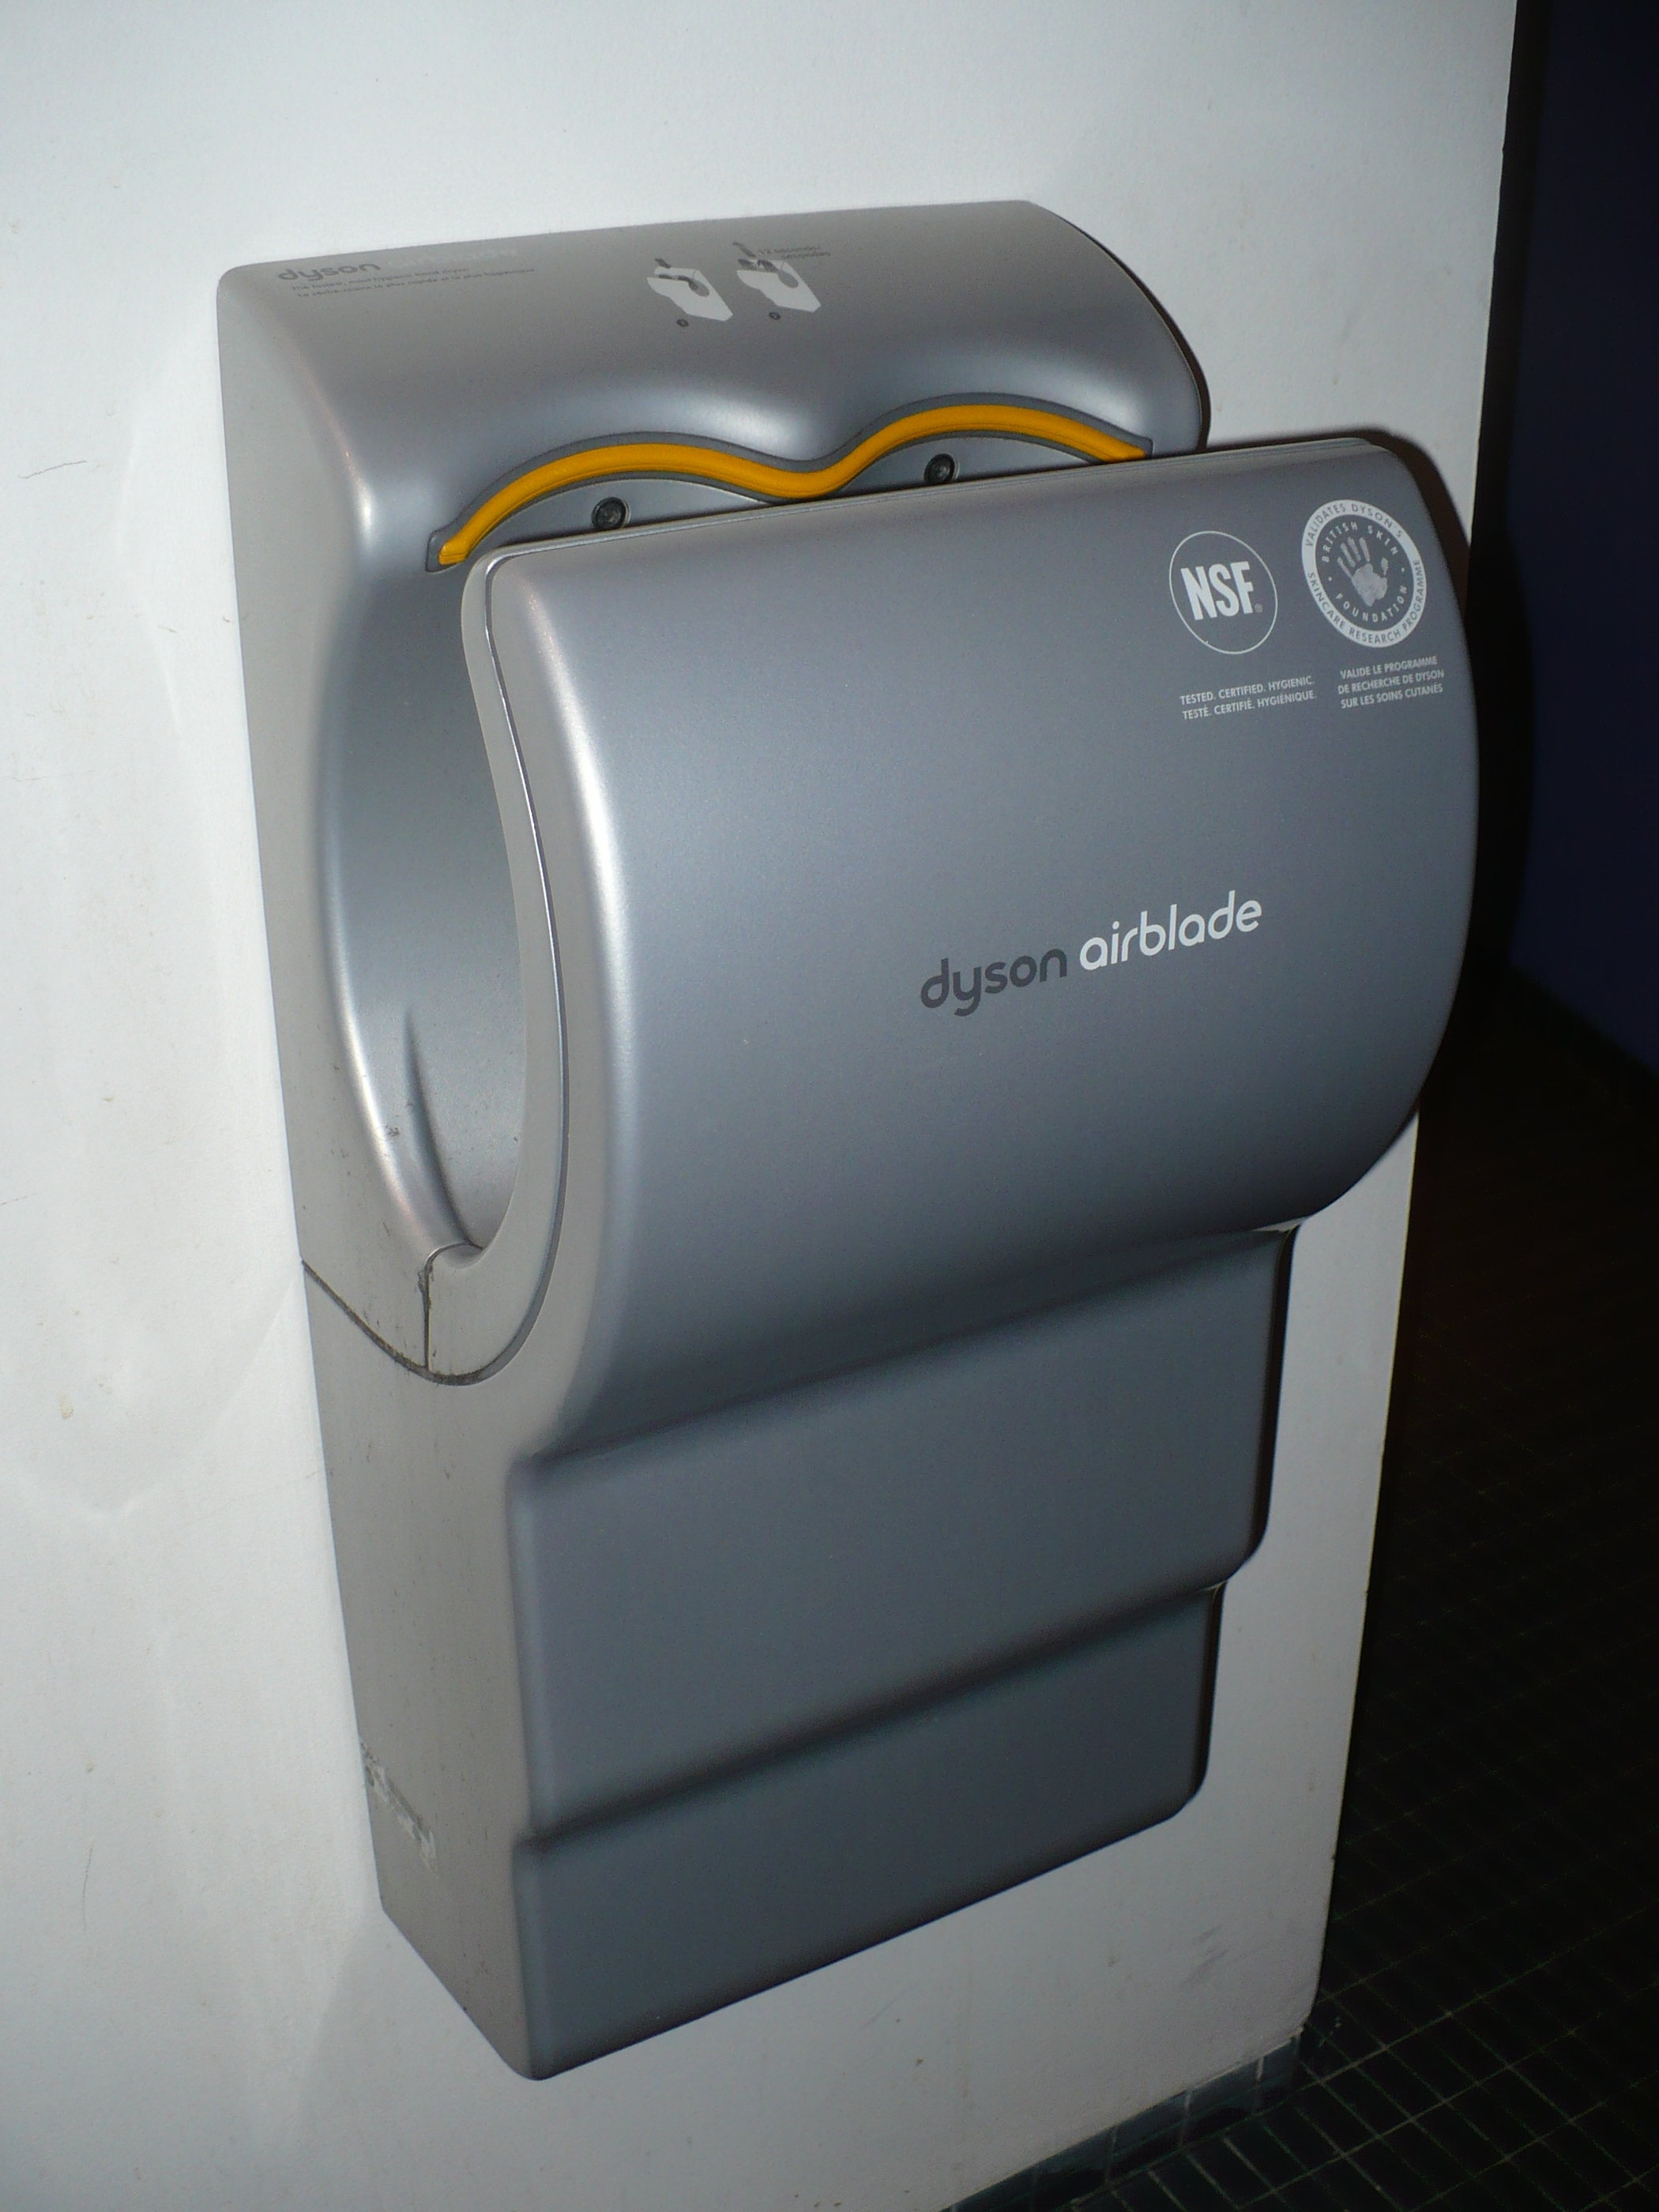 Dyson_airblade_at_DX.JPG